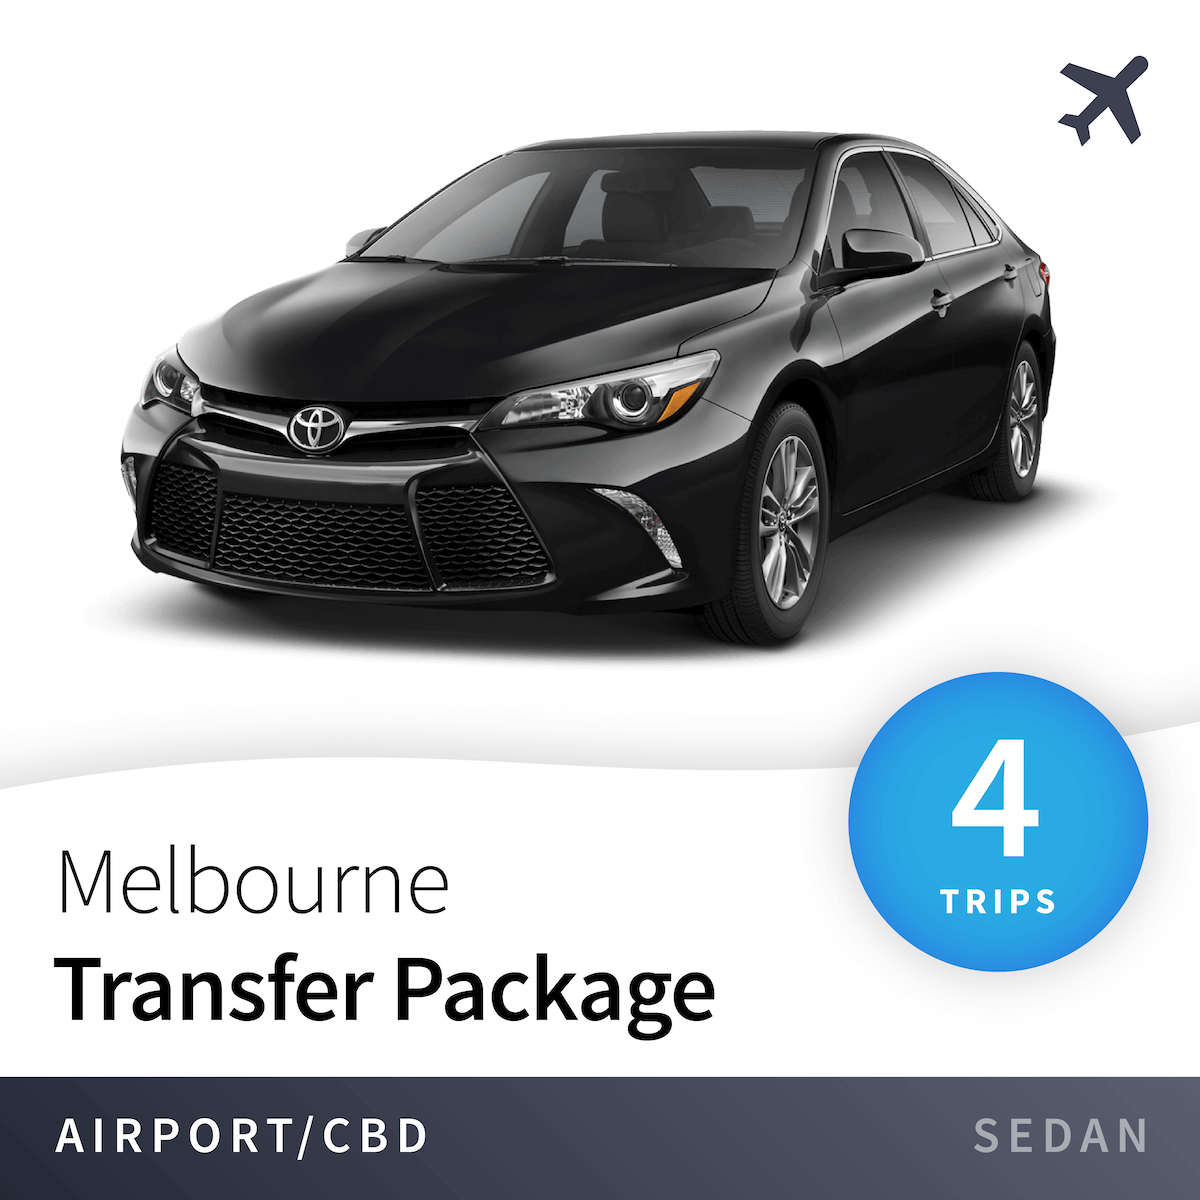 Melbourne Airport Transfer Package - Sedan (4 Trips) 10